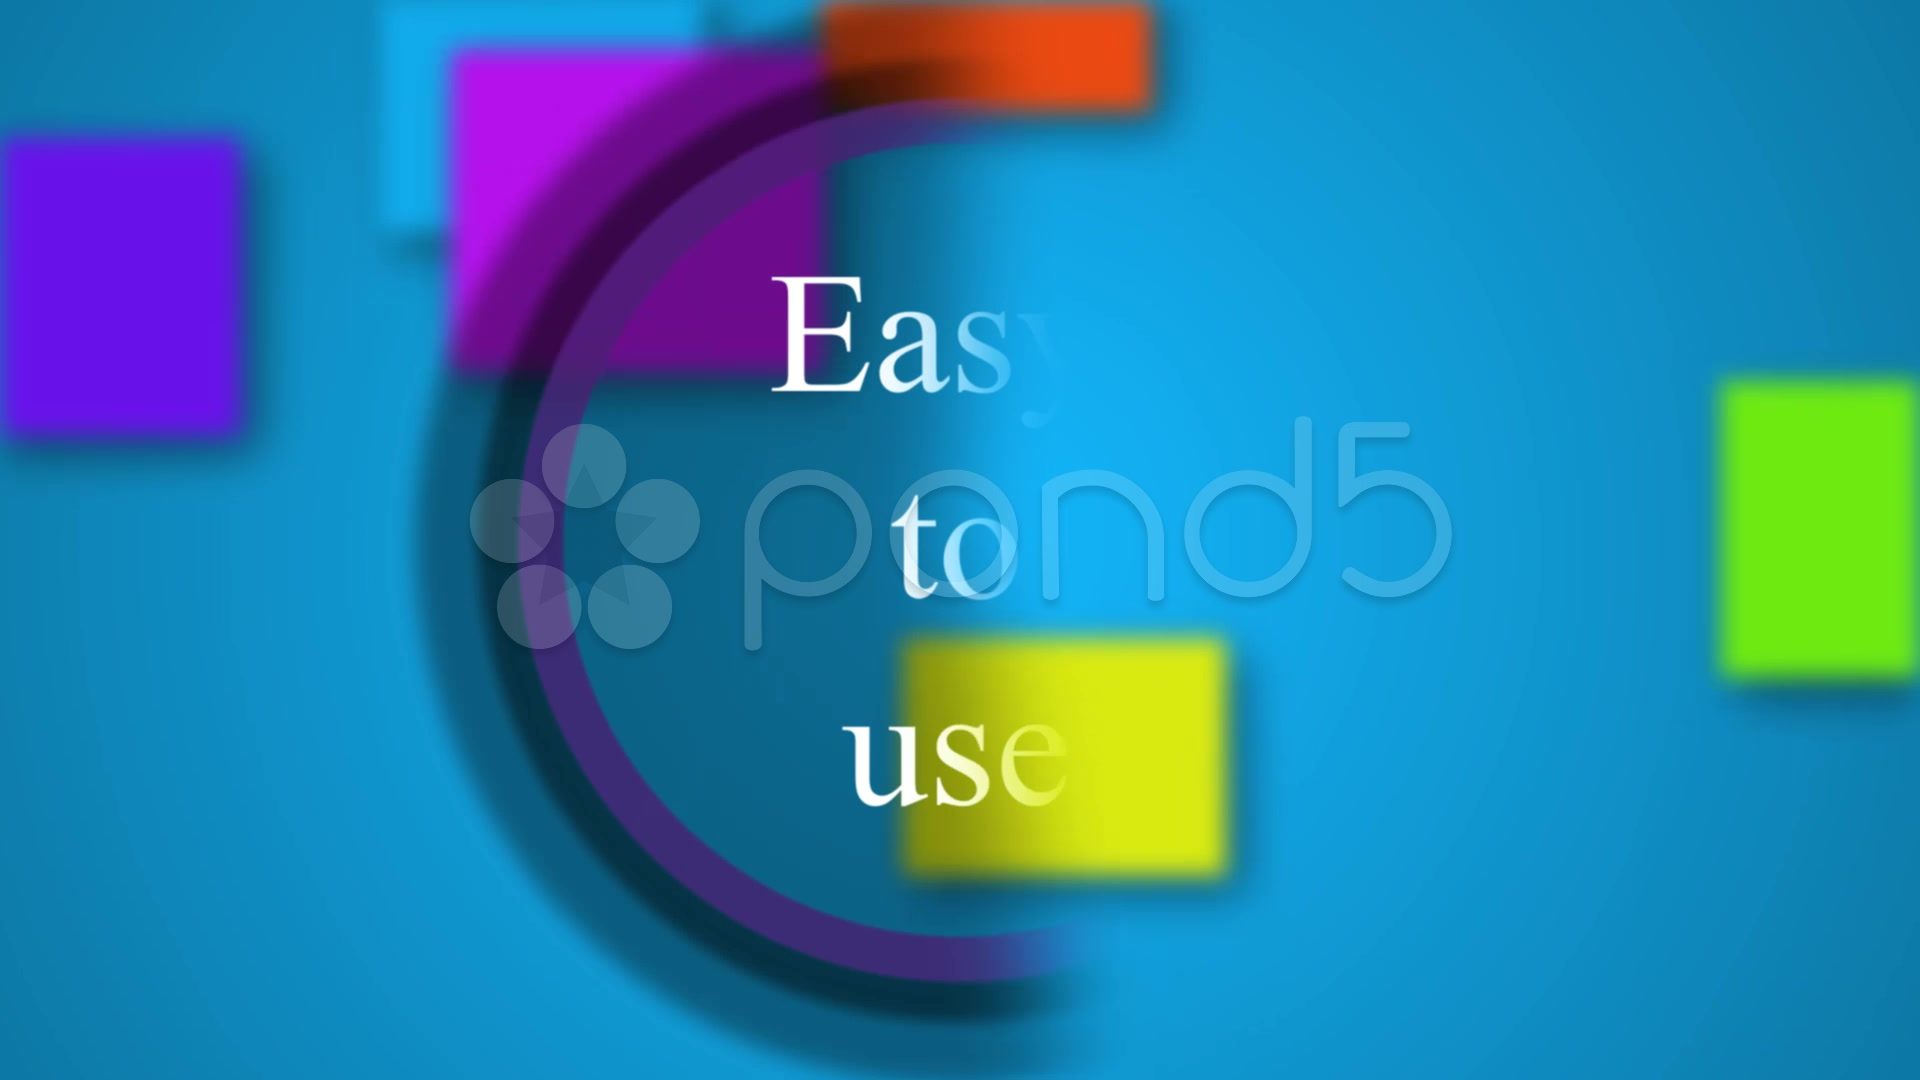 After Effects Project - Pond5 Boxes and circle 37533939